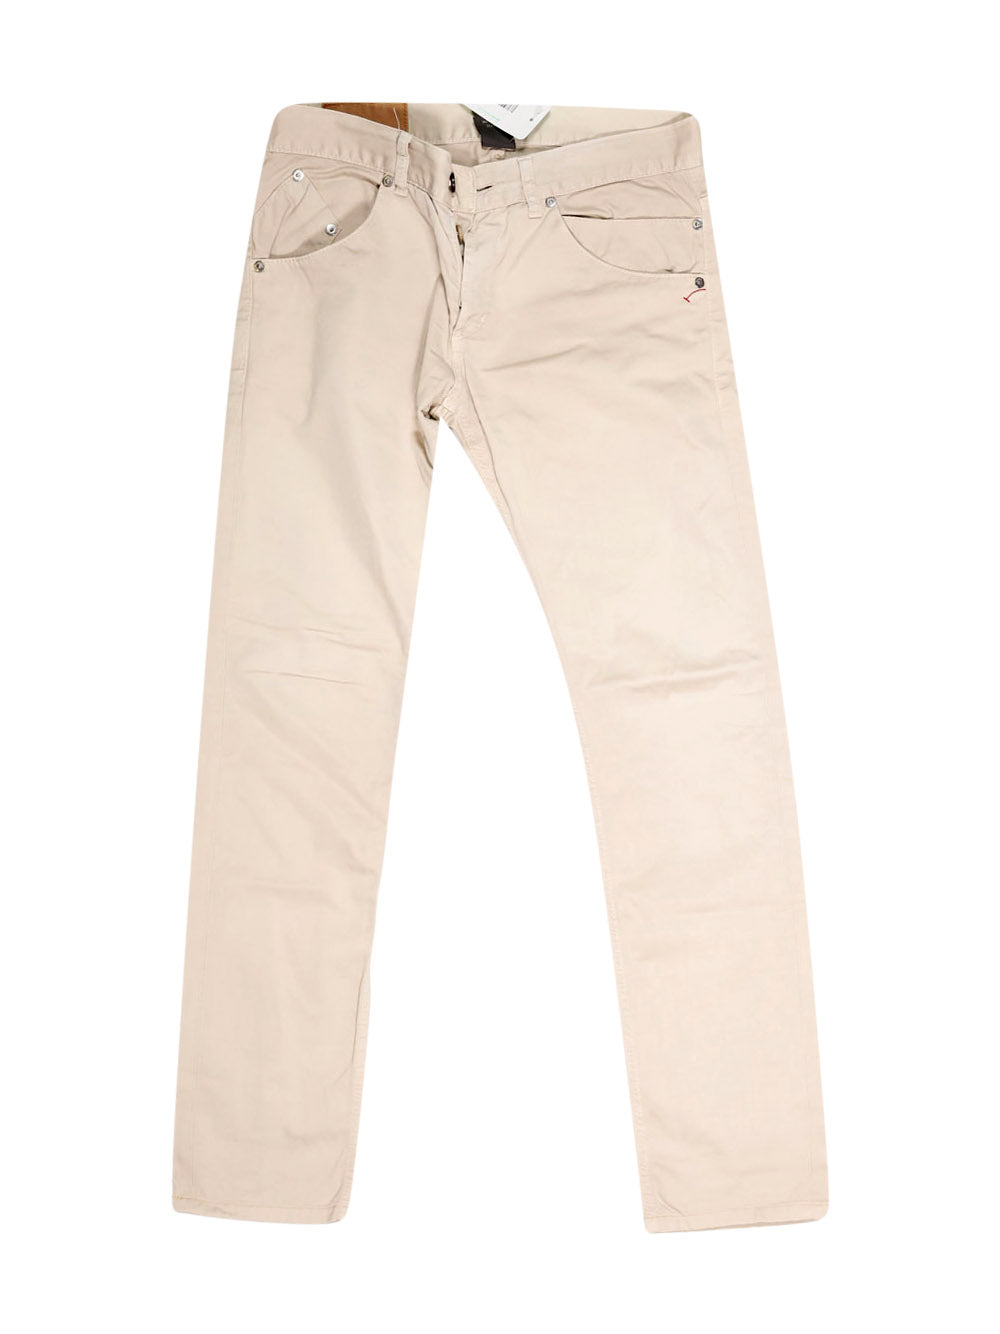 Front photo of Preloved Dondup Beige Man's trousers - size 34/XS